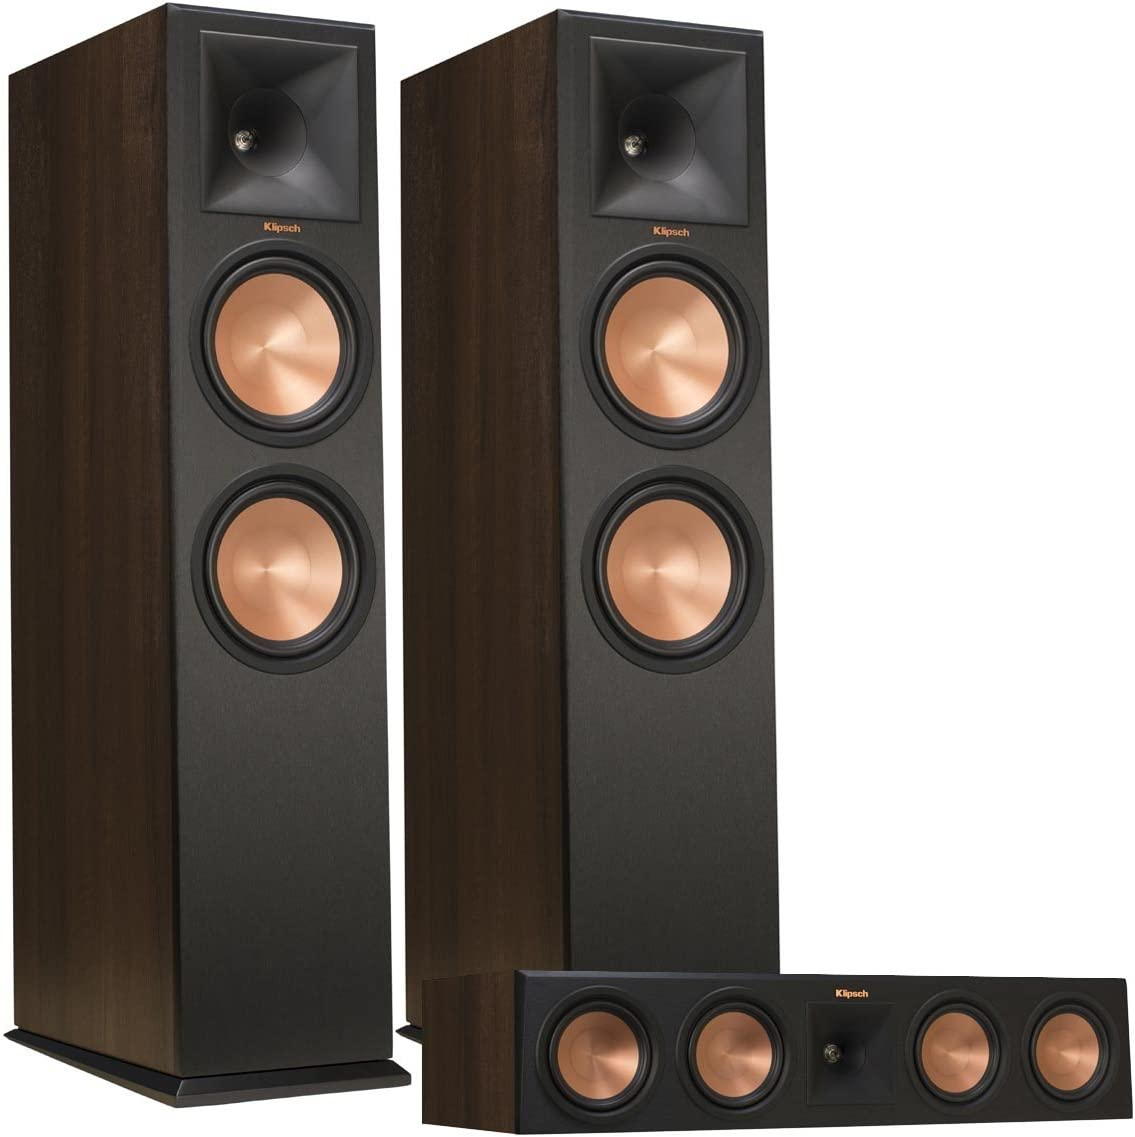 Klipsch RP-280F Reference Premiere Floorstanding Speaker Pair with RP-450C Reference Premiere Center Channel Speaker Walnut